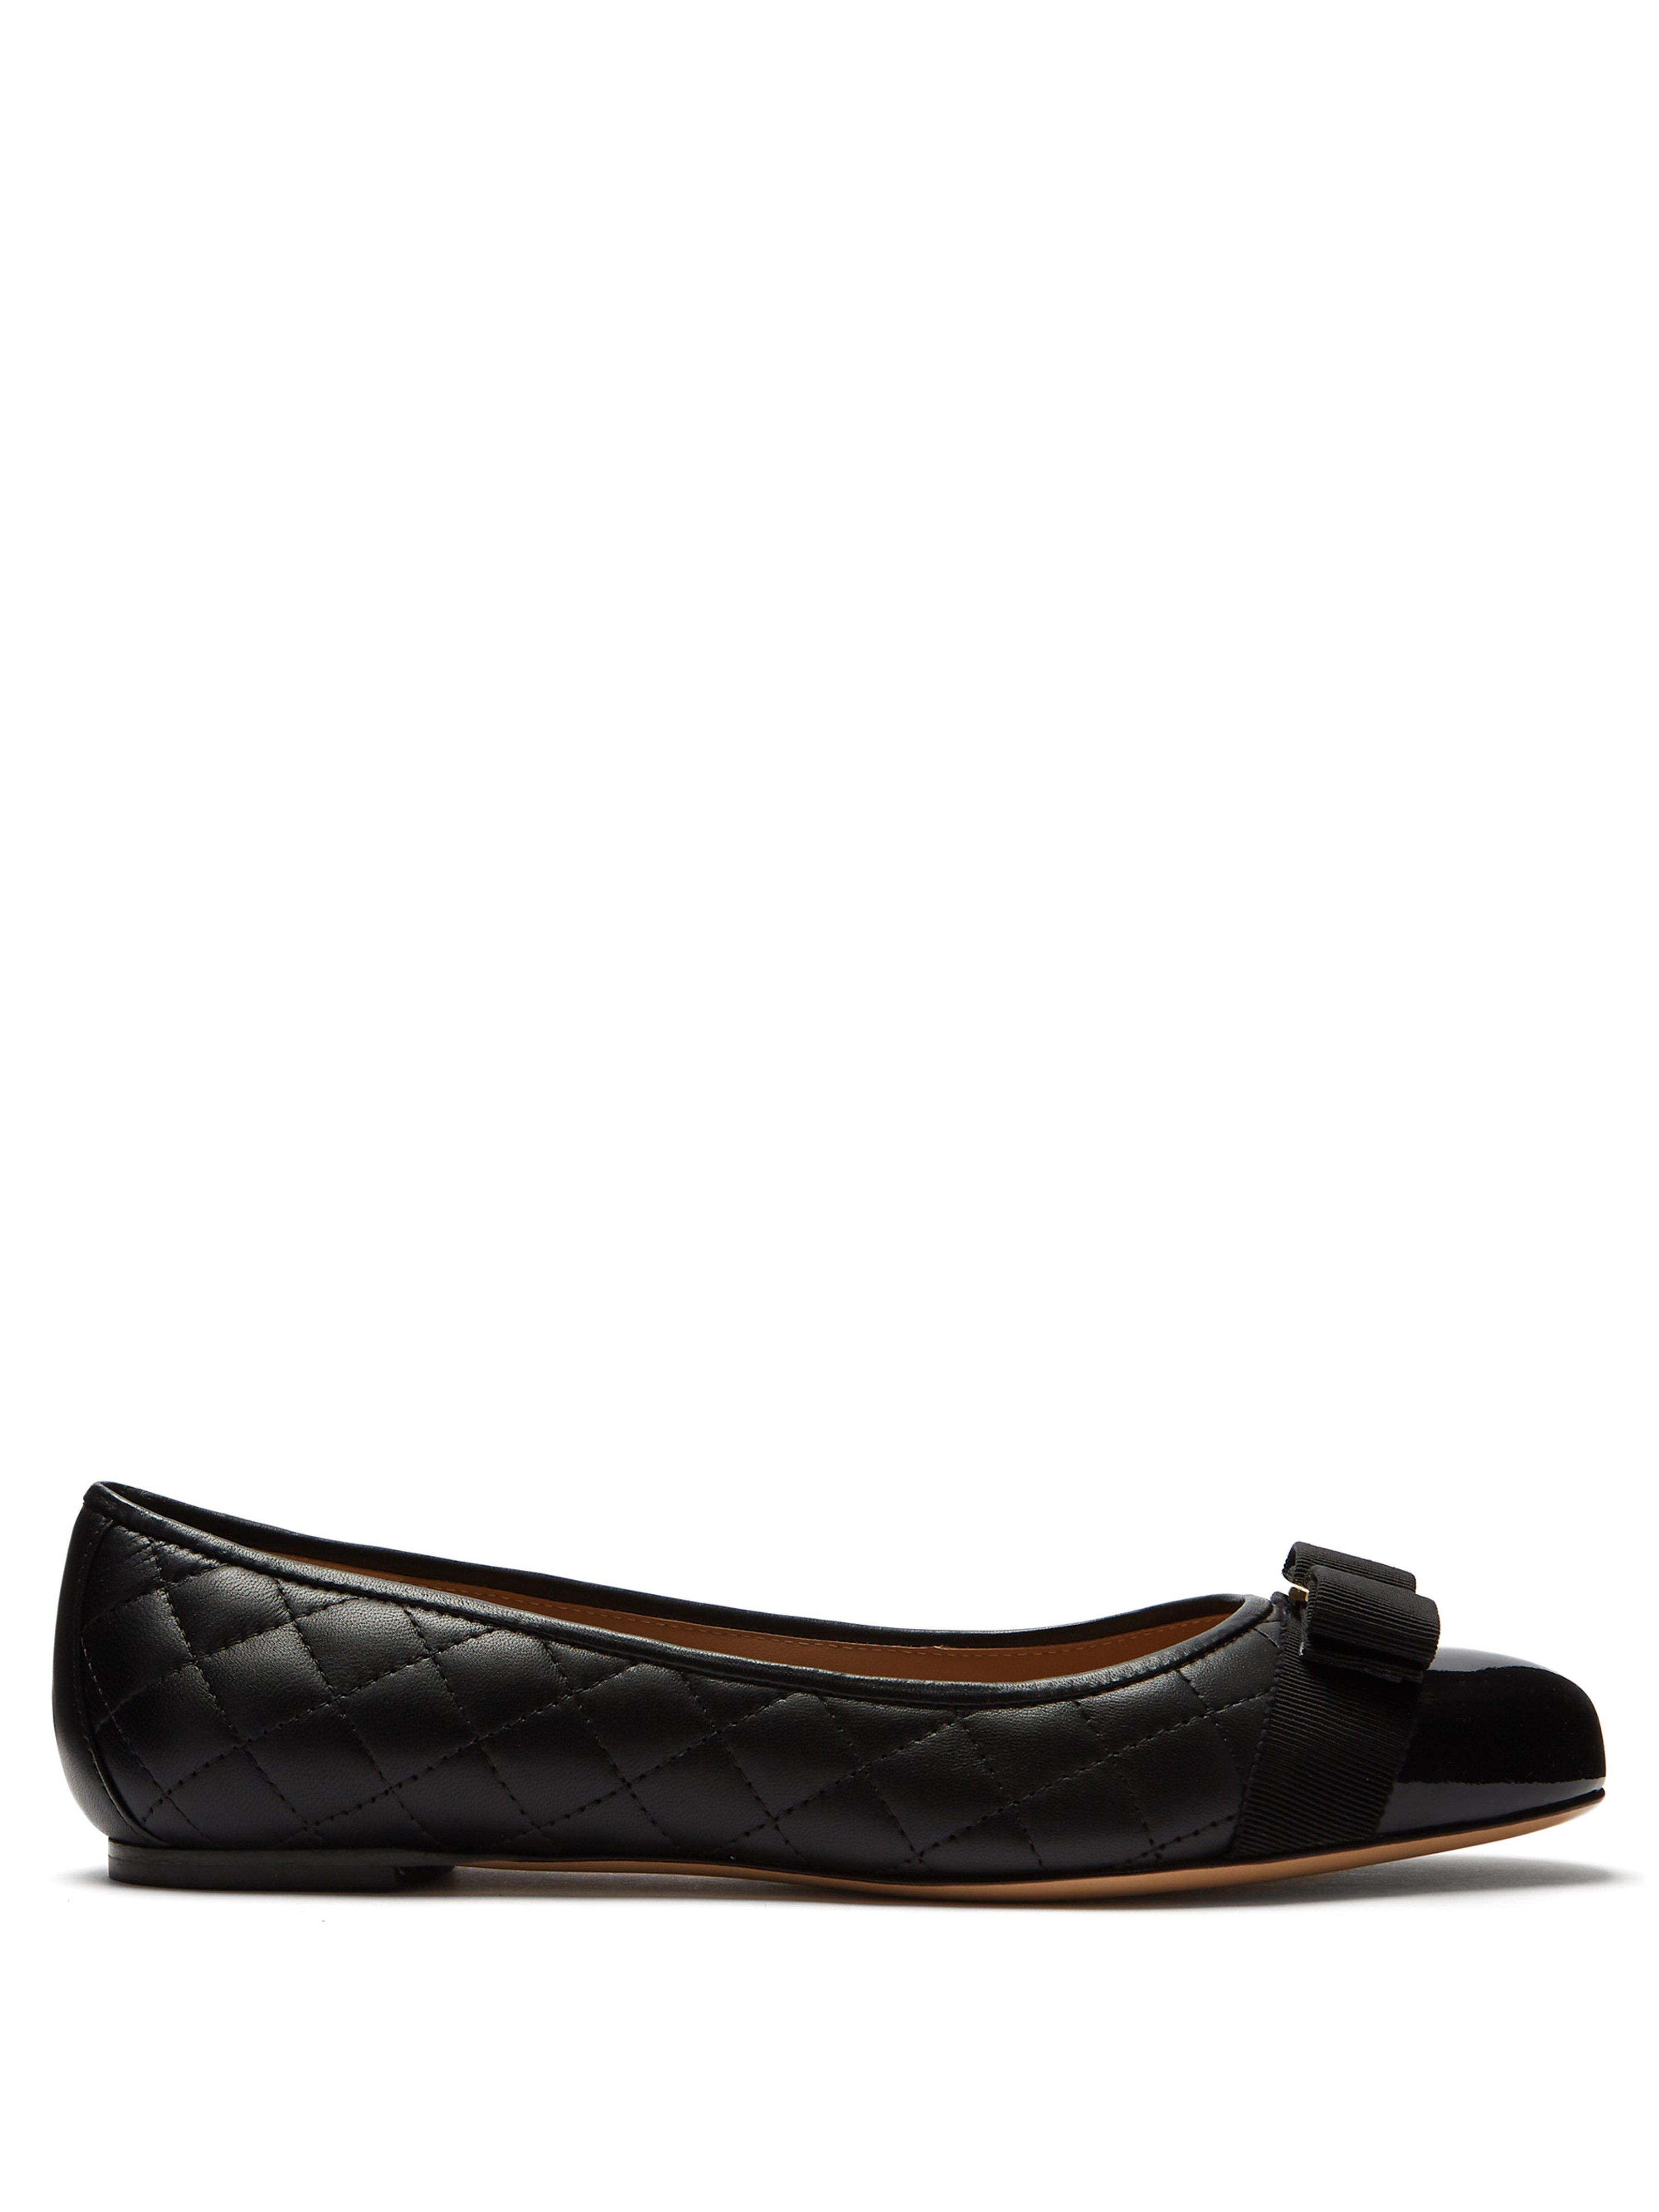 wholesale buy thoughts on Ferragamo Varina Quilted Leather Ballet Flats in Black - Save ...